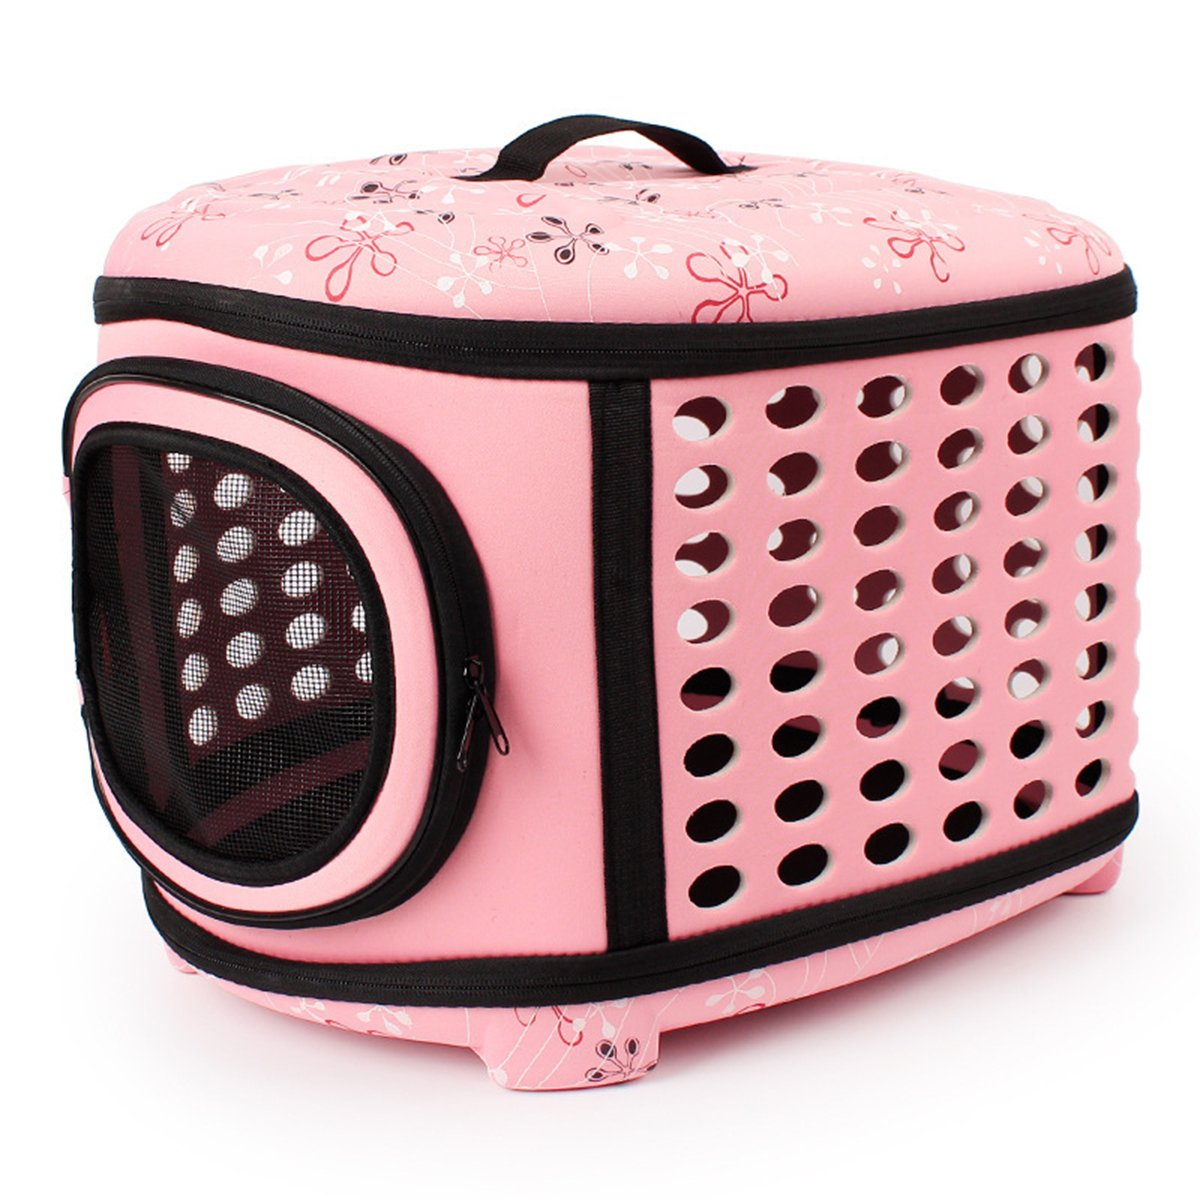 QZBAOSHU Pet Carriers for Dog & Cat Portable Traveling Kennel for Cats Small Dogs Puppies Rabbits 18LX14WX12H (Pink) by QZBAOSHU